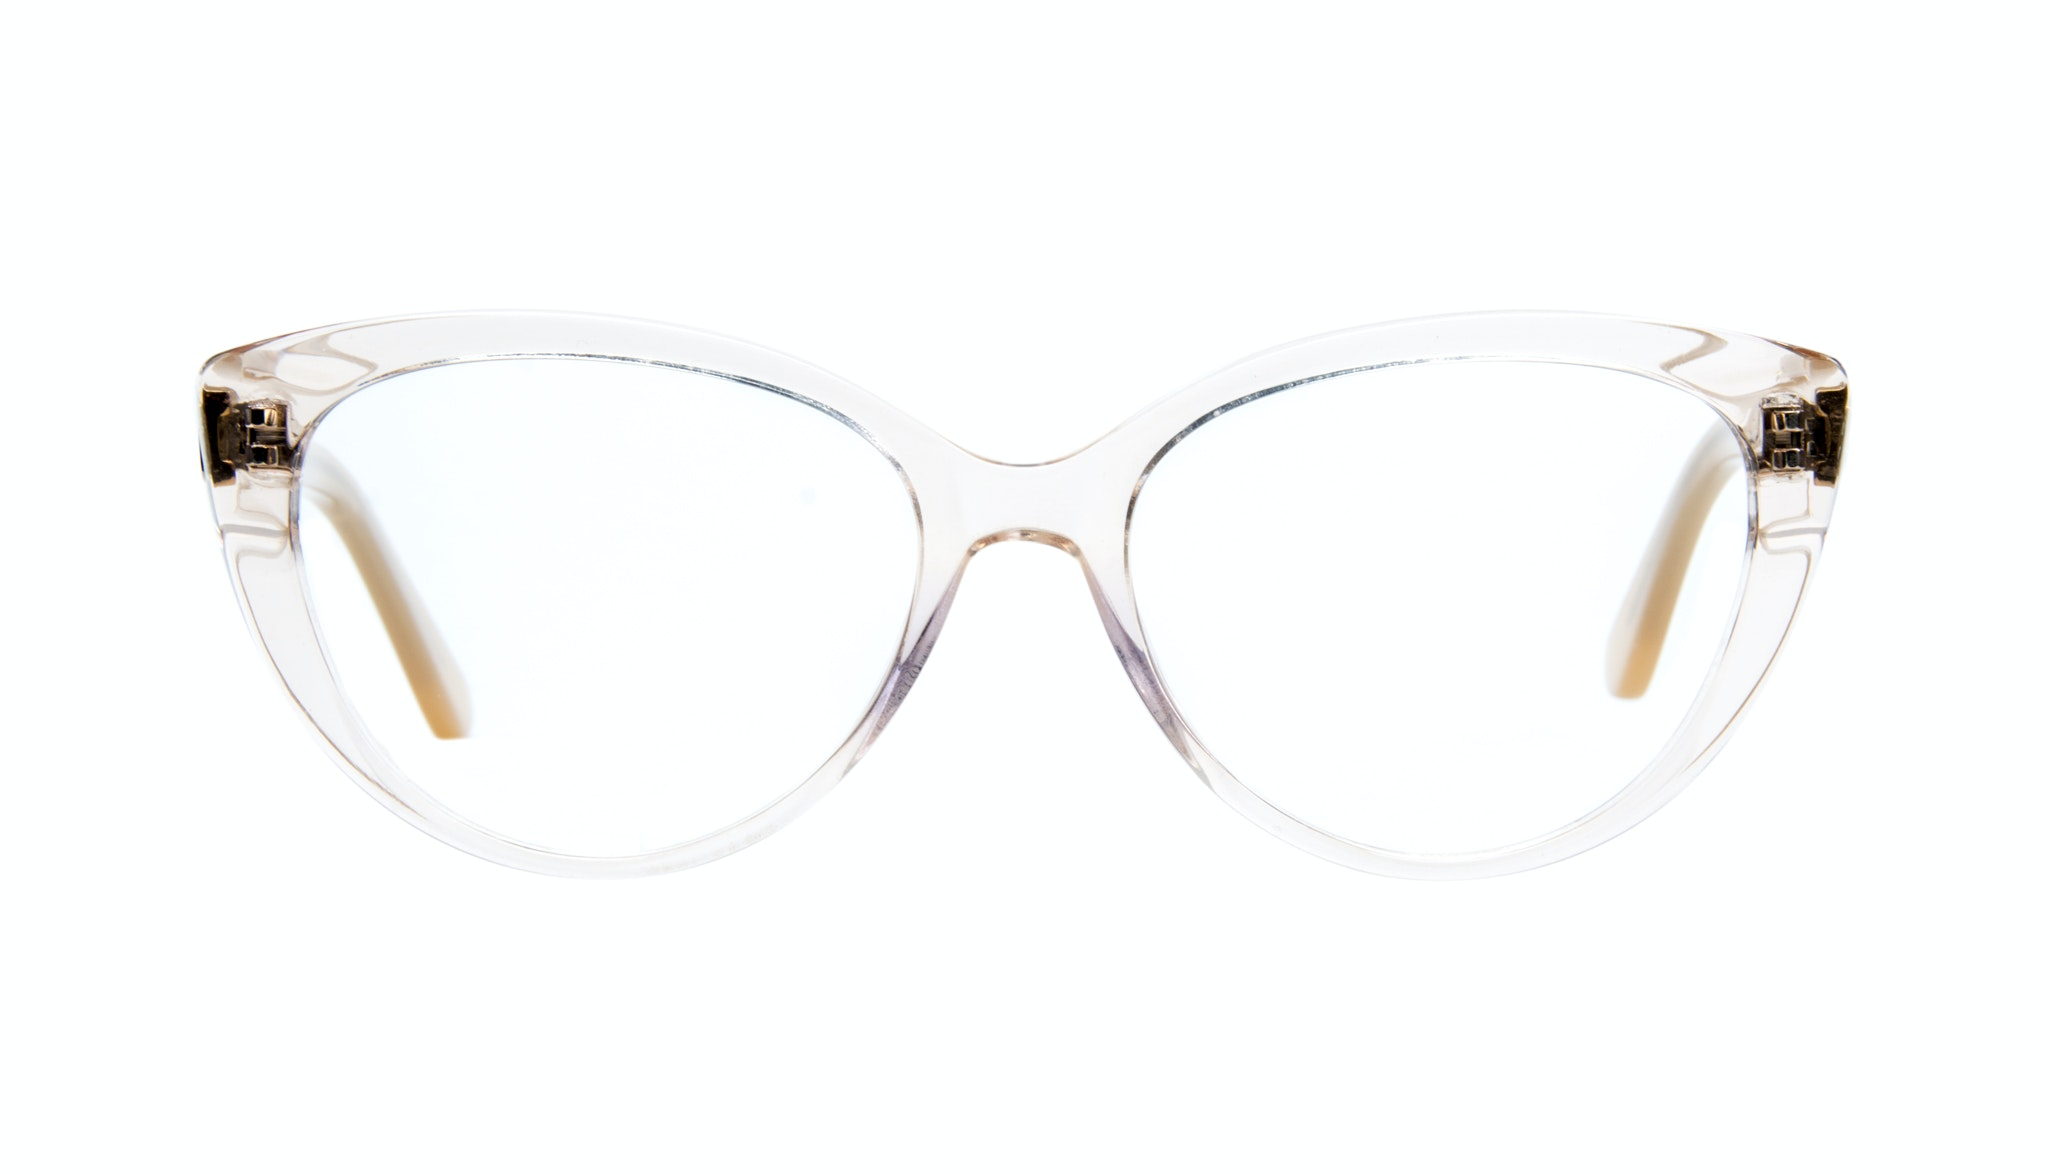 Affordable Fashion Glasses Cat Eye Eyeglasses Women Bliss Blond Metal